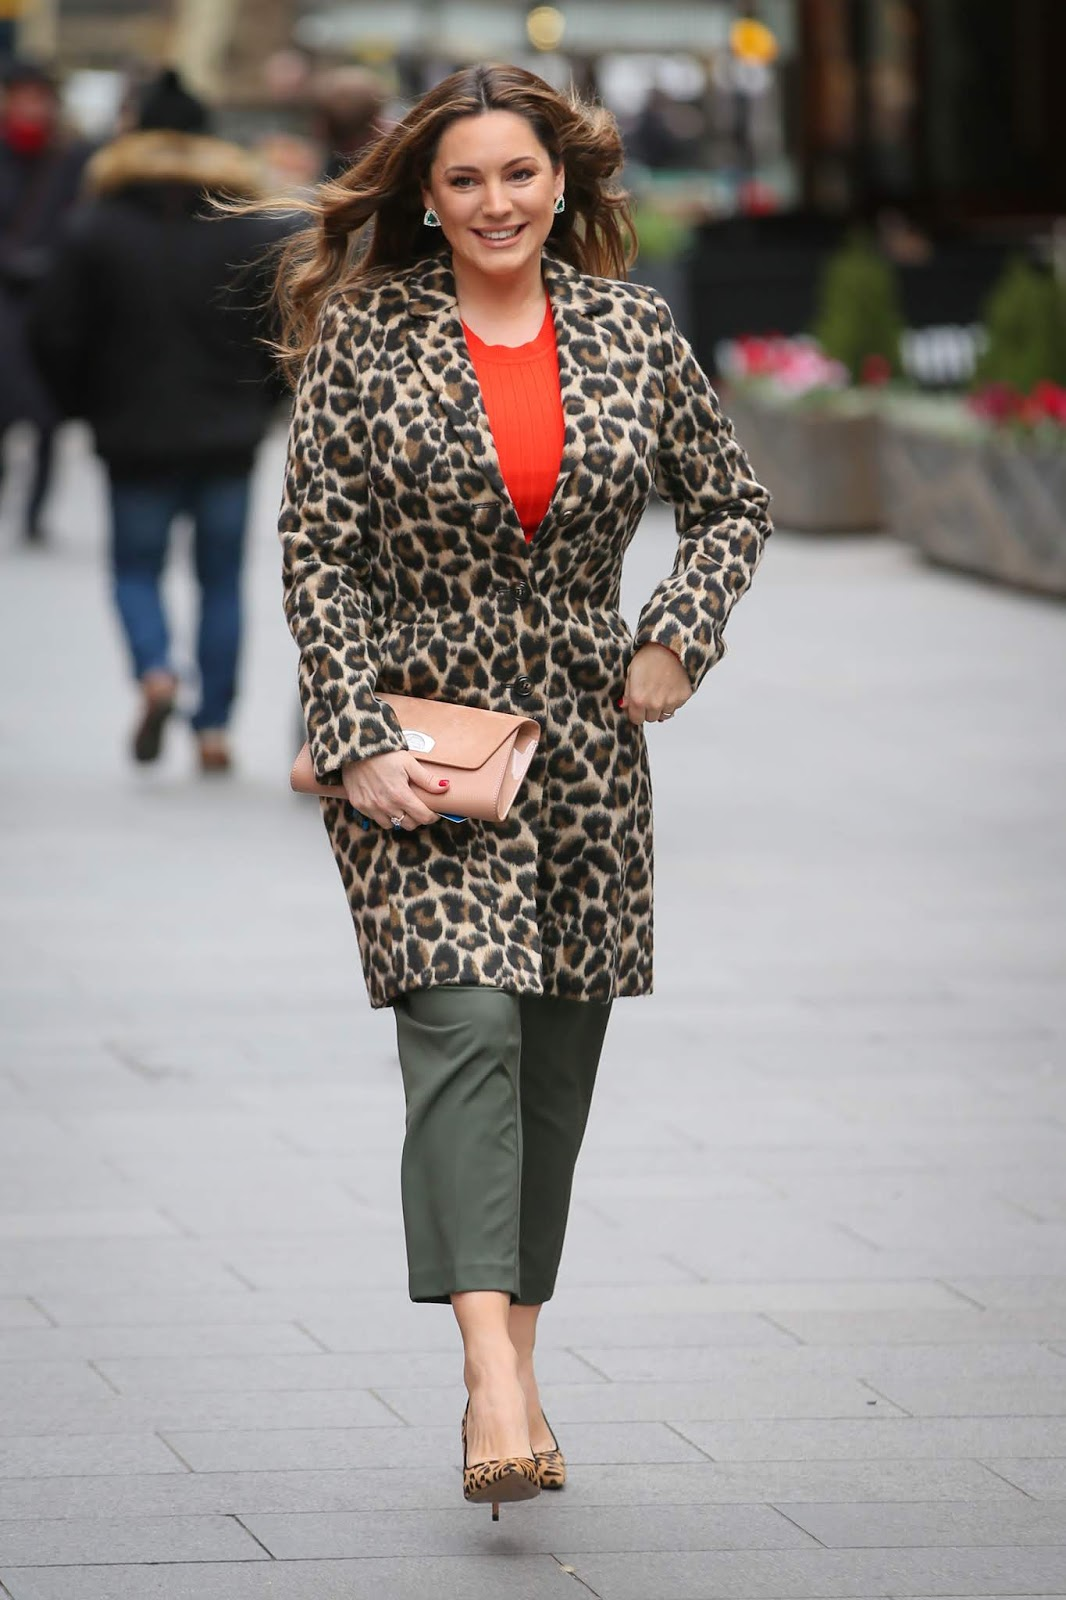 Kelly Brook - Arriving at Global show to present the Heart Radio show in London - 02/11/2019